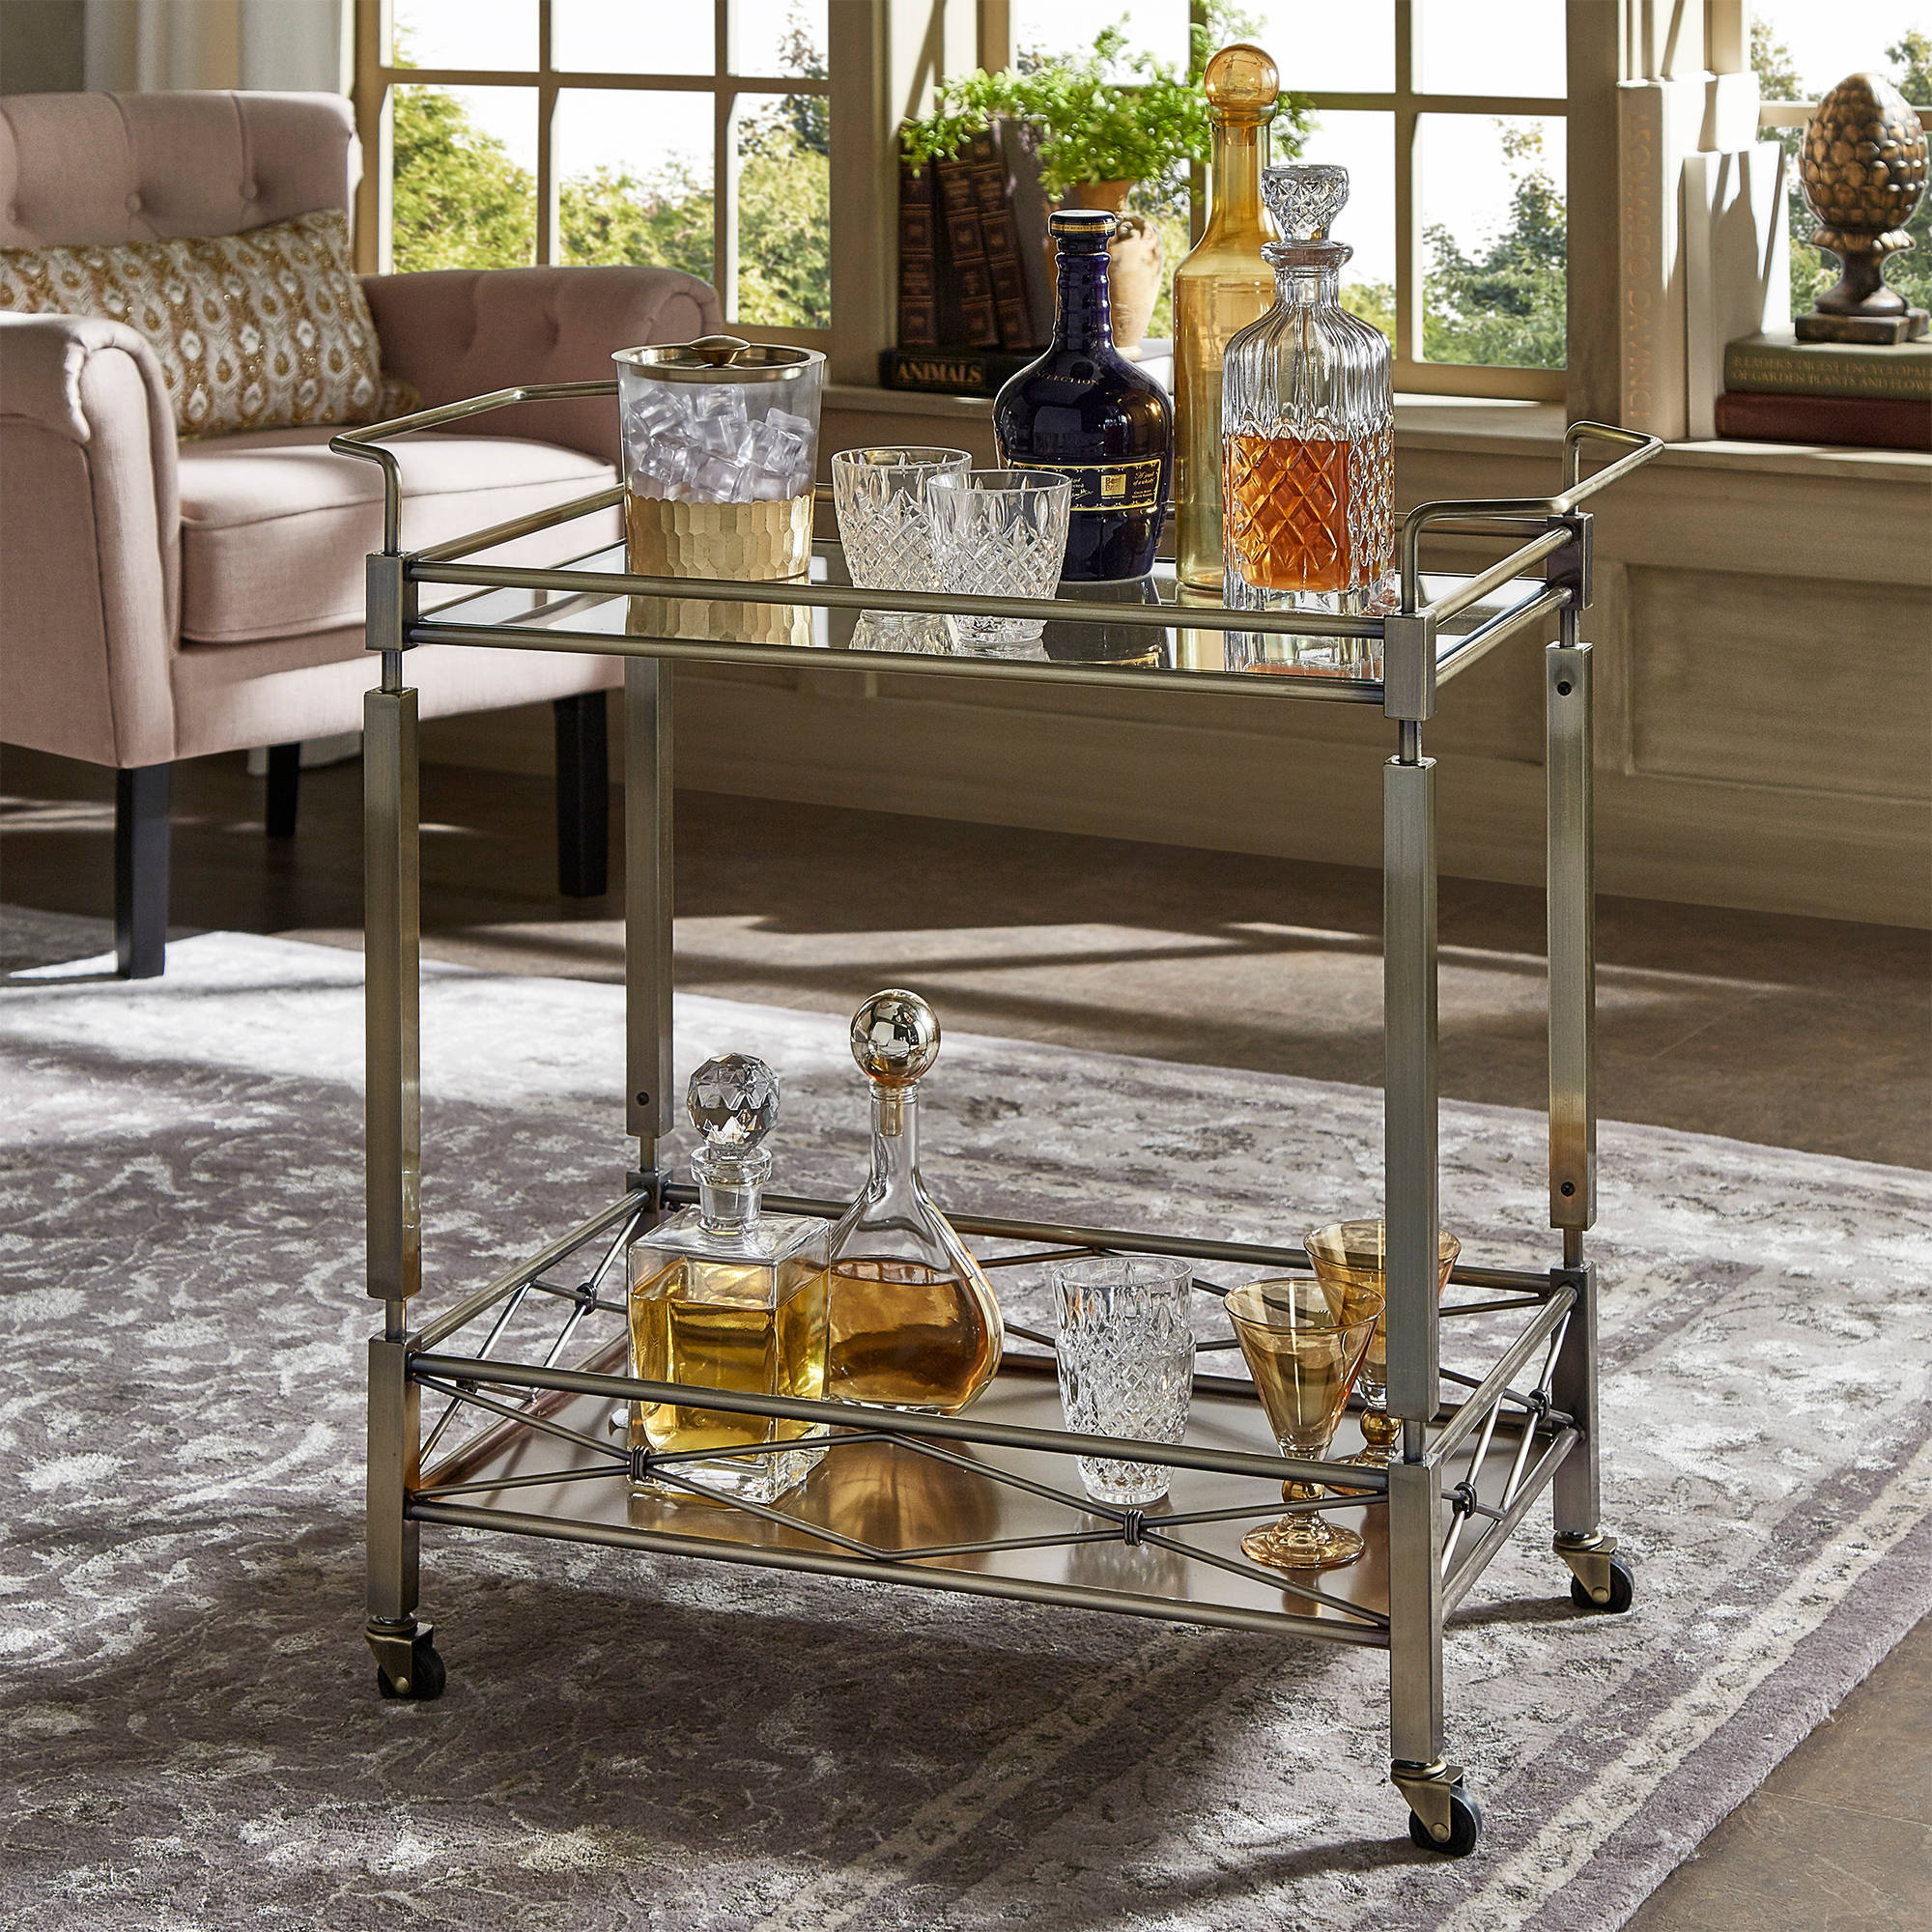 Chelsea Lane Antique Brass Clear Tempered Glass Metal Kitchen Cart